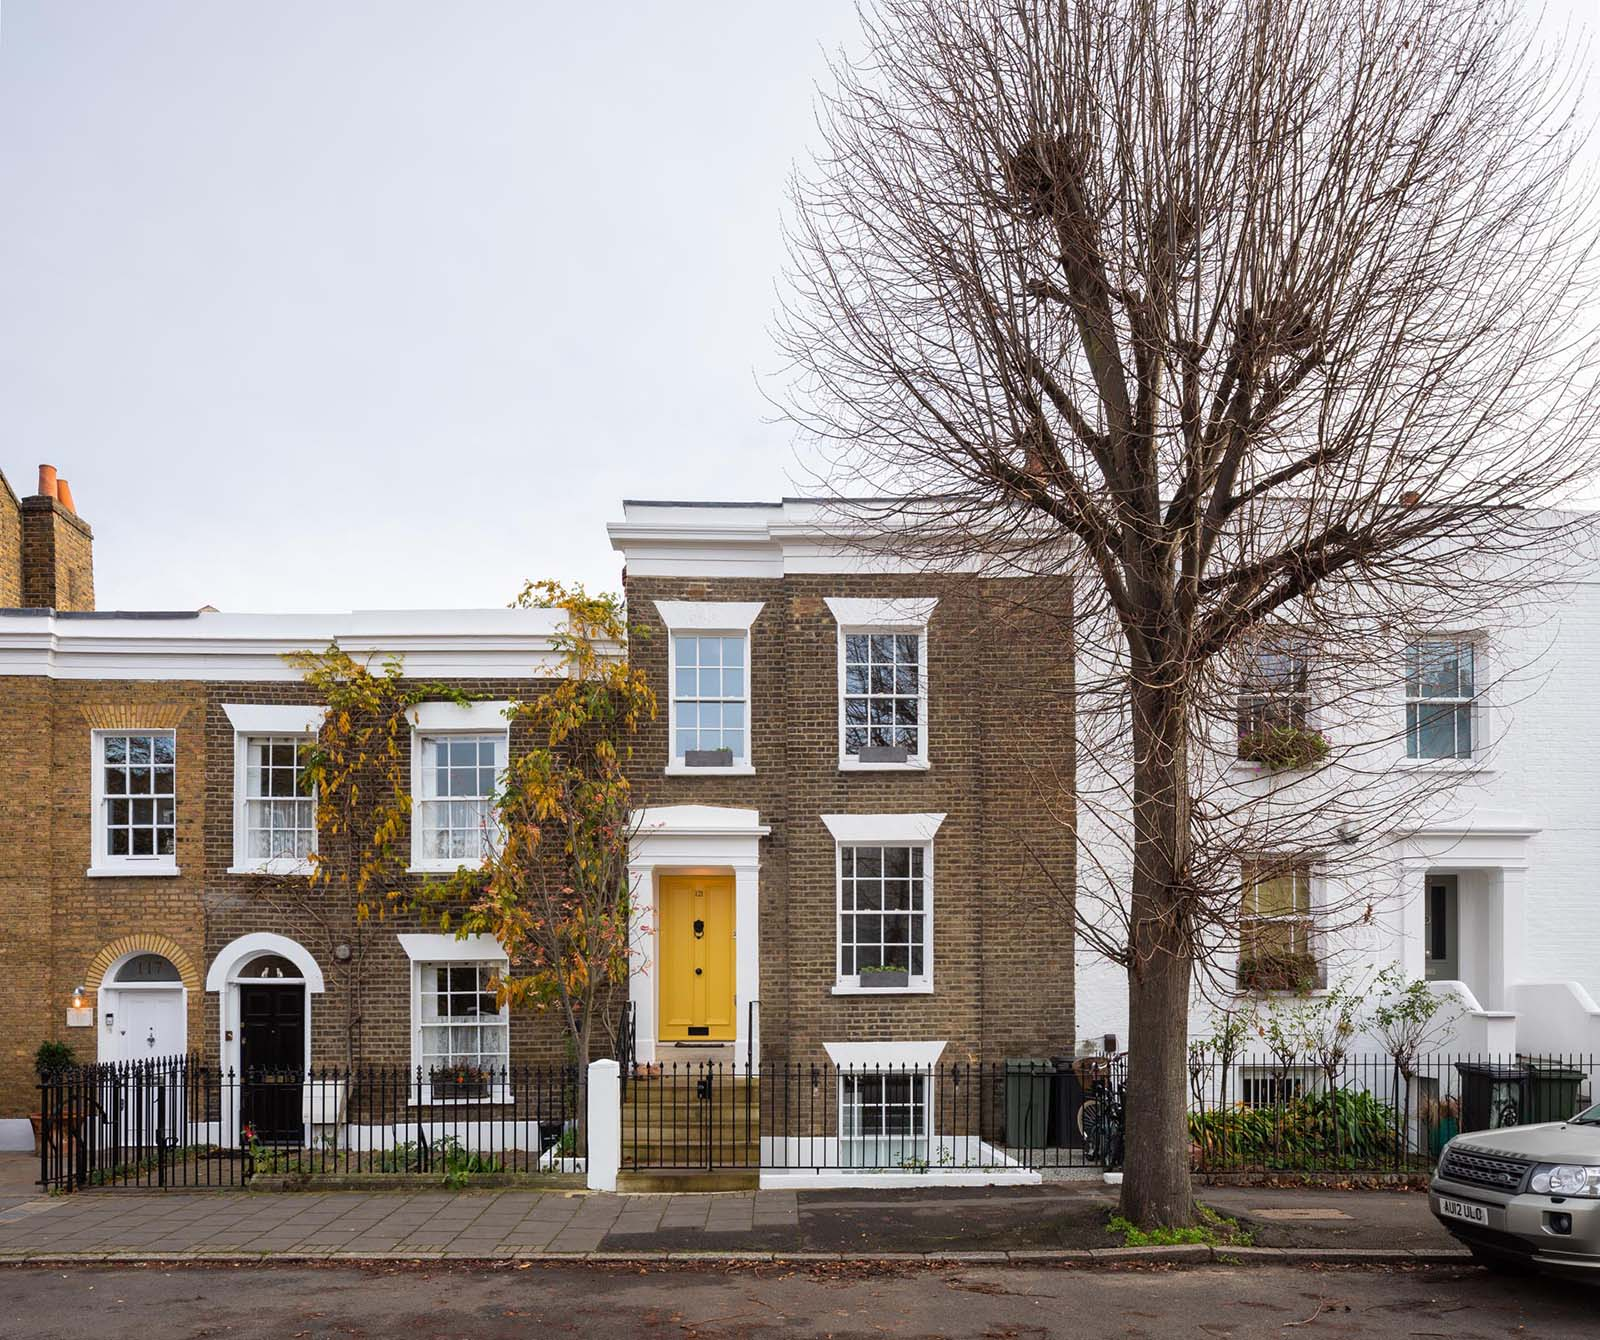 A brick terraced house in London, England.